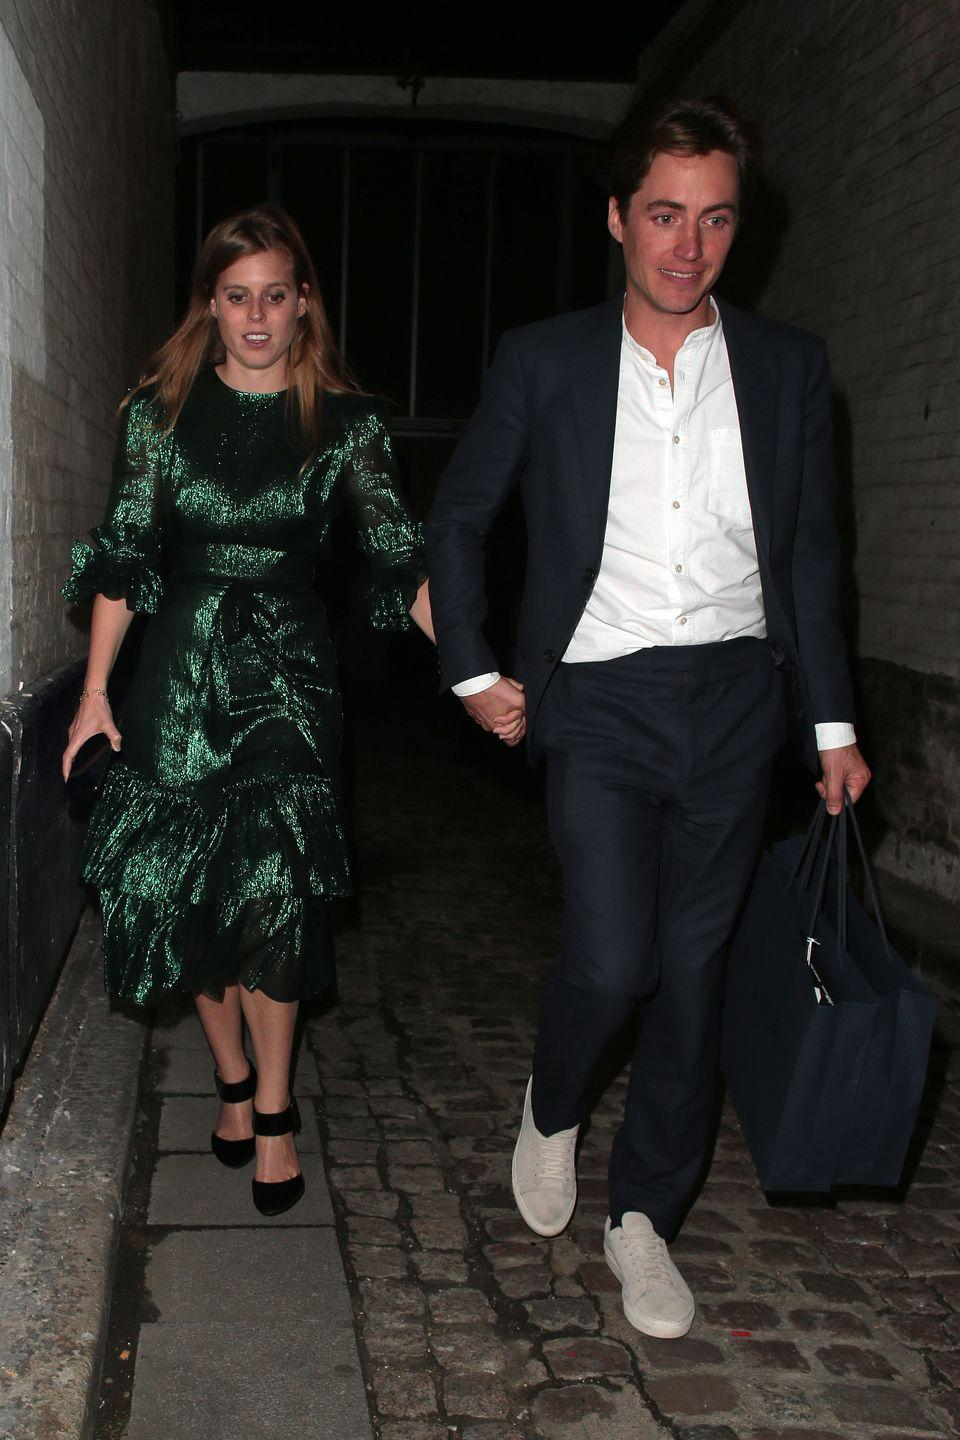 <p>For their first public appearance after their engagement, Beatrice and Edo held hands while attending <em>The Dior Sessions</em> book launch.</p>